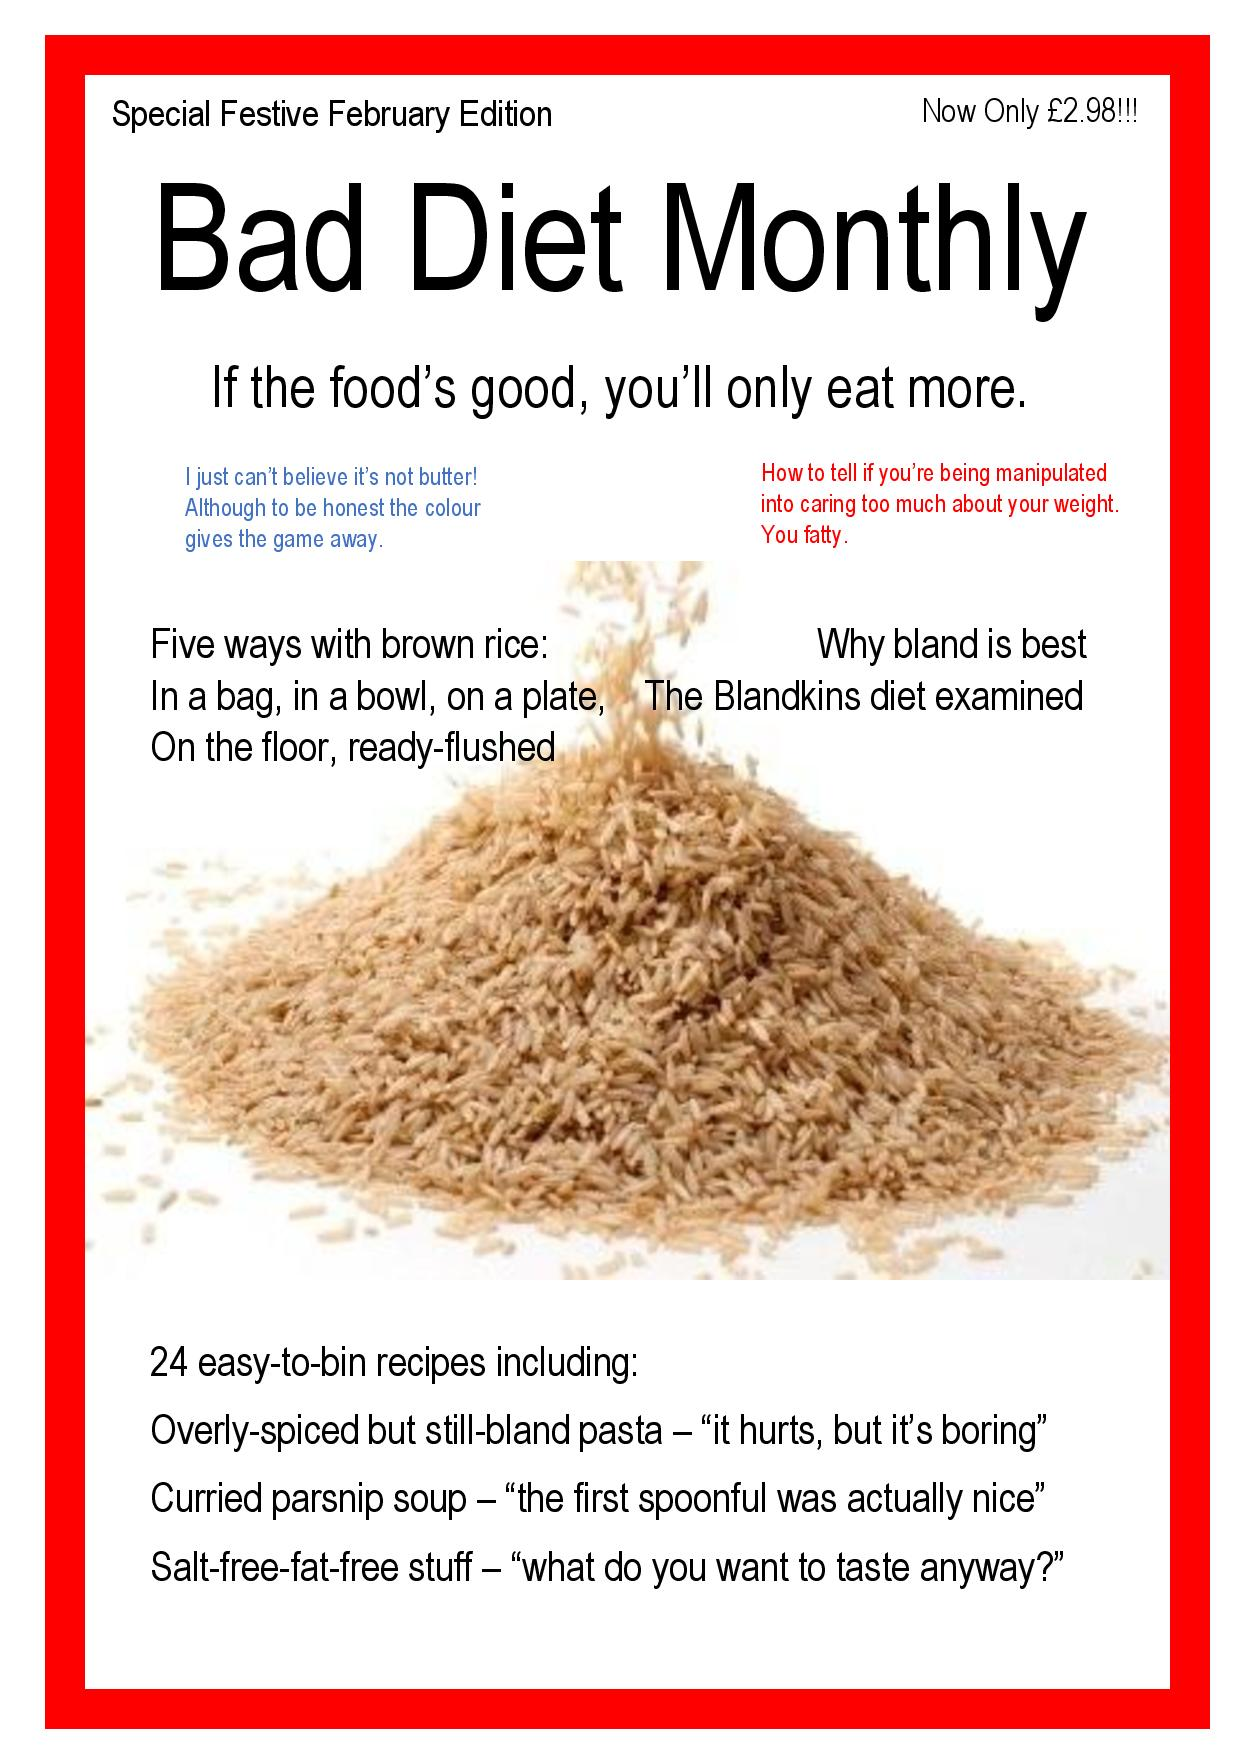 Bad Diet Monthly-page-001.jpg